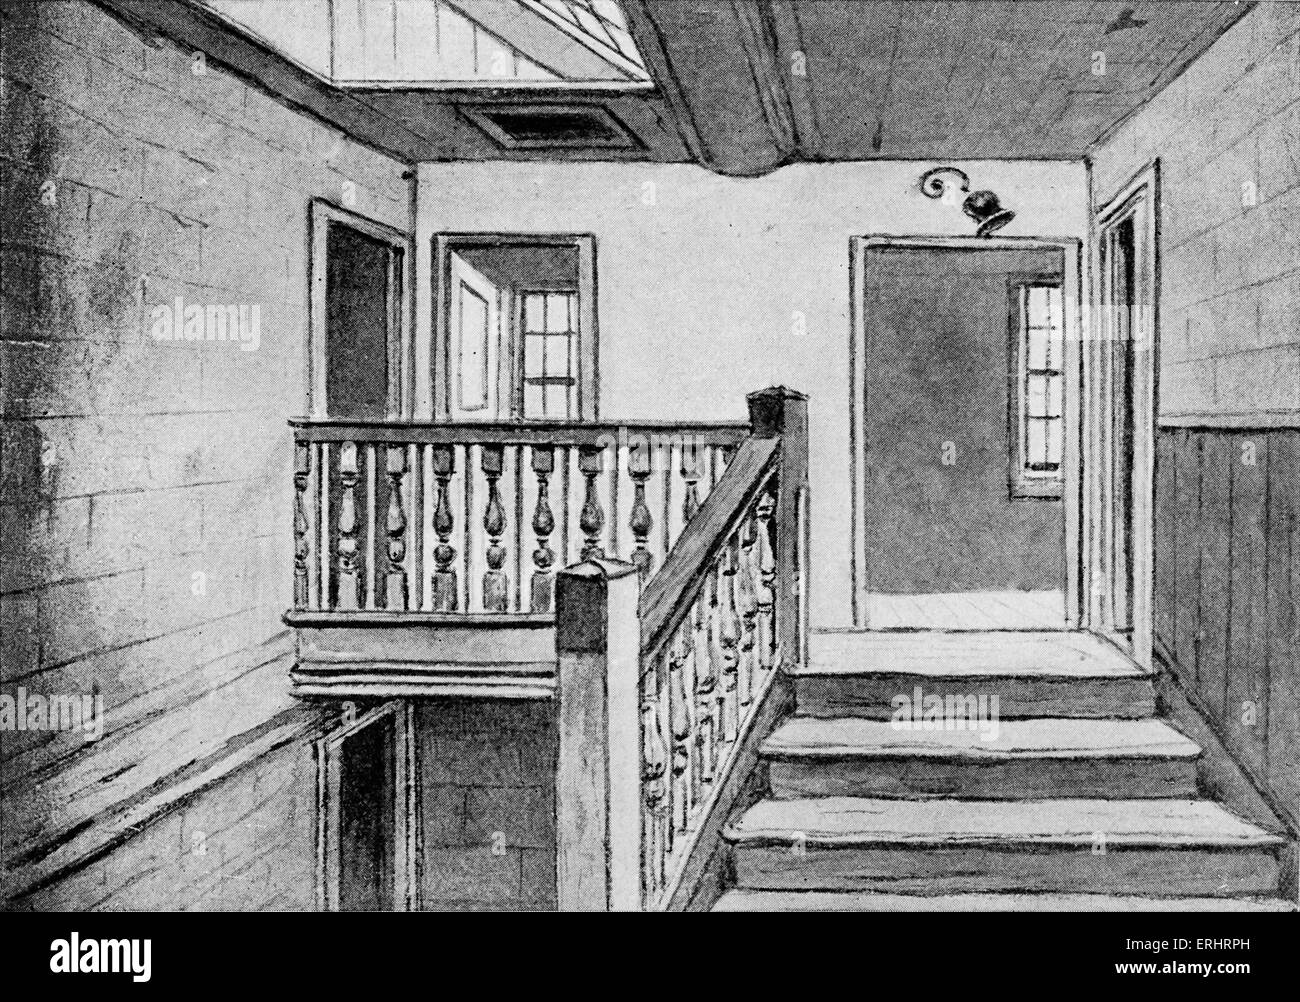 Samuel Johnson's house - the stairway in Gough Square.  SJ: English essayist, biographer, lexicographer and - Stock Image